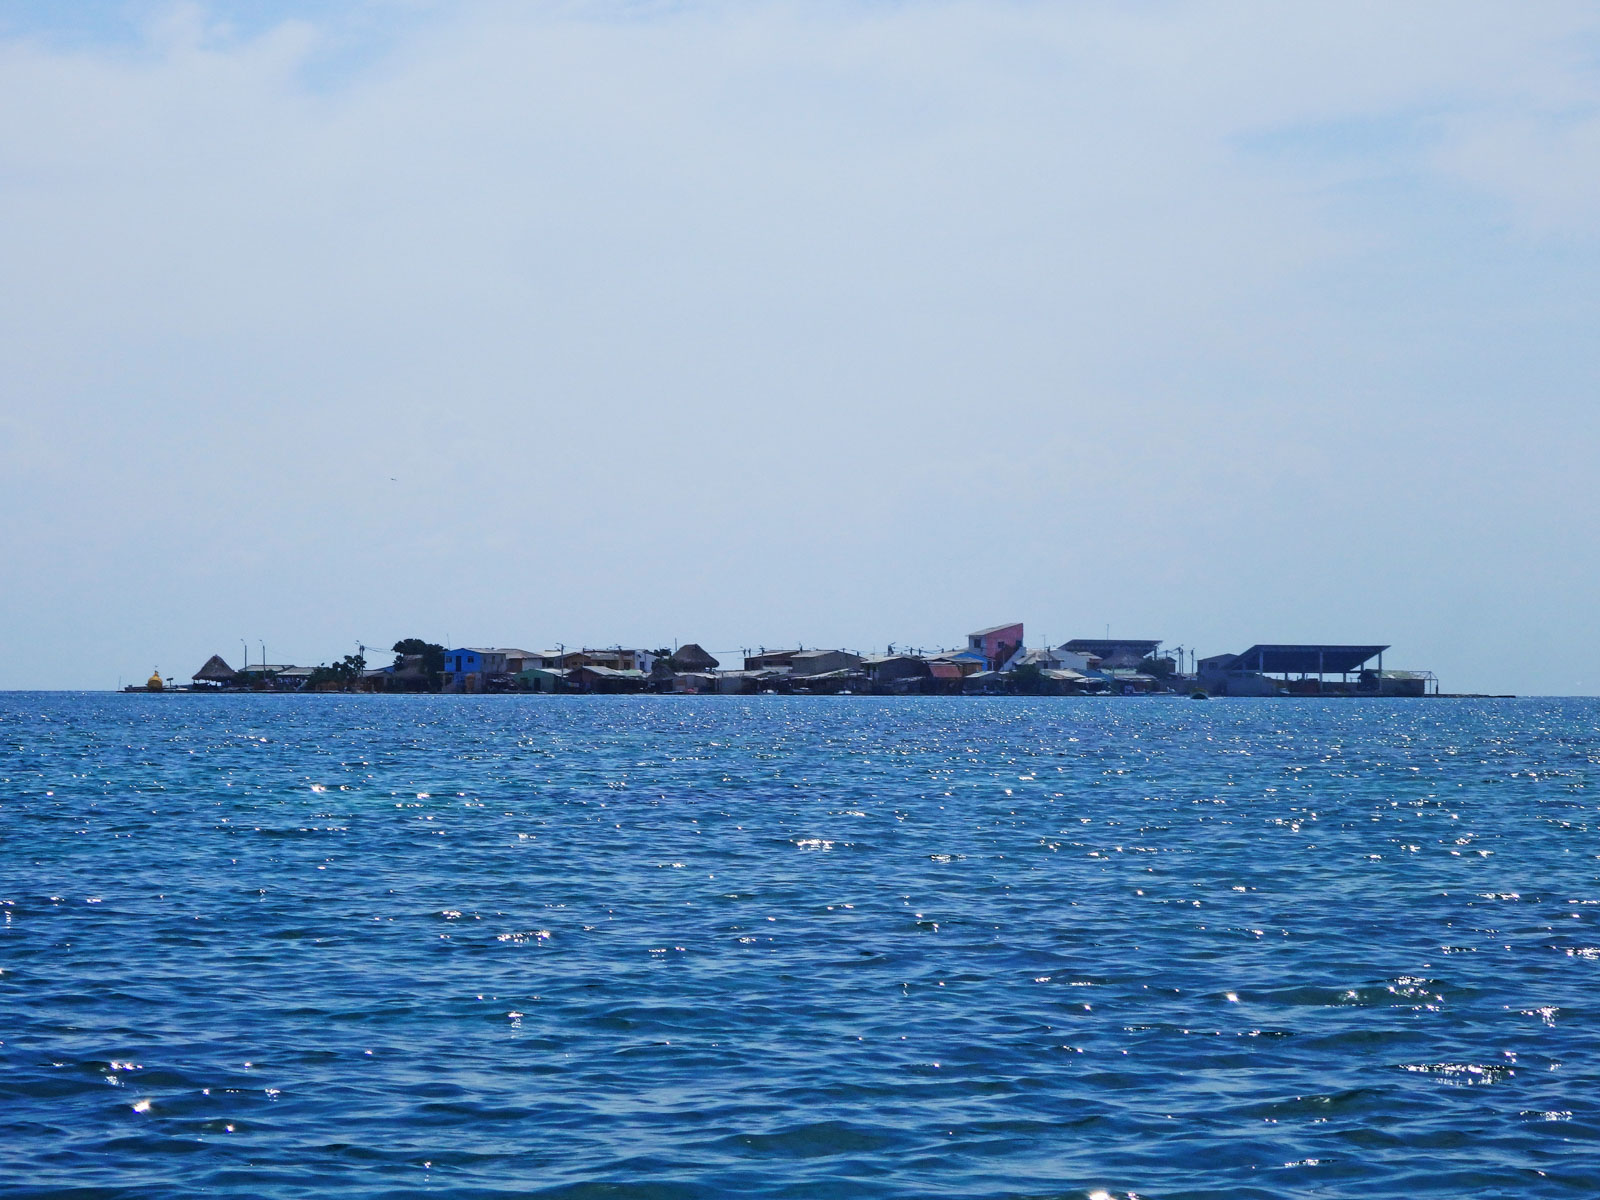 Staying at Casa en el Agua, the hostel in the sea. A view of the most densely populated island on earth Santa Cruz del Islote